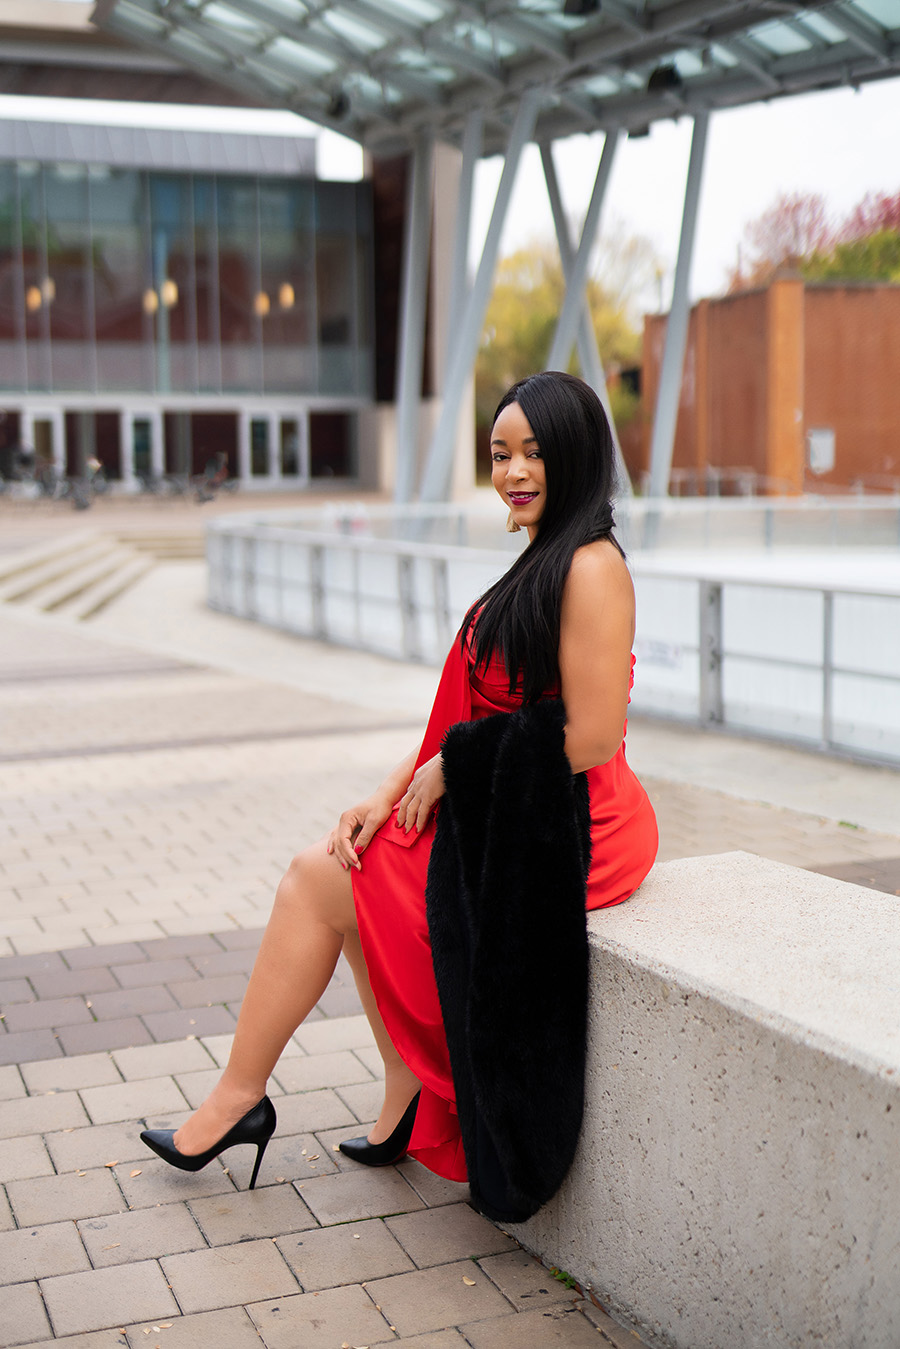 holiday outfit, What's Haute 2019 Holiday outfit ideas, 50 holiday looks, Coco Myles red satin high low dress, Christian Louboutin Pigalle pumps, Zara faux fur scarf, H&M gold fringe earrings